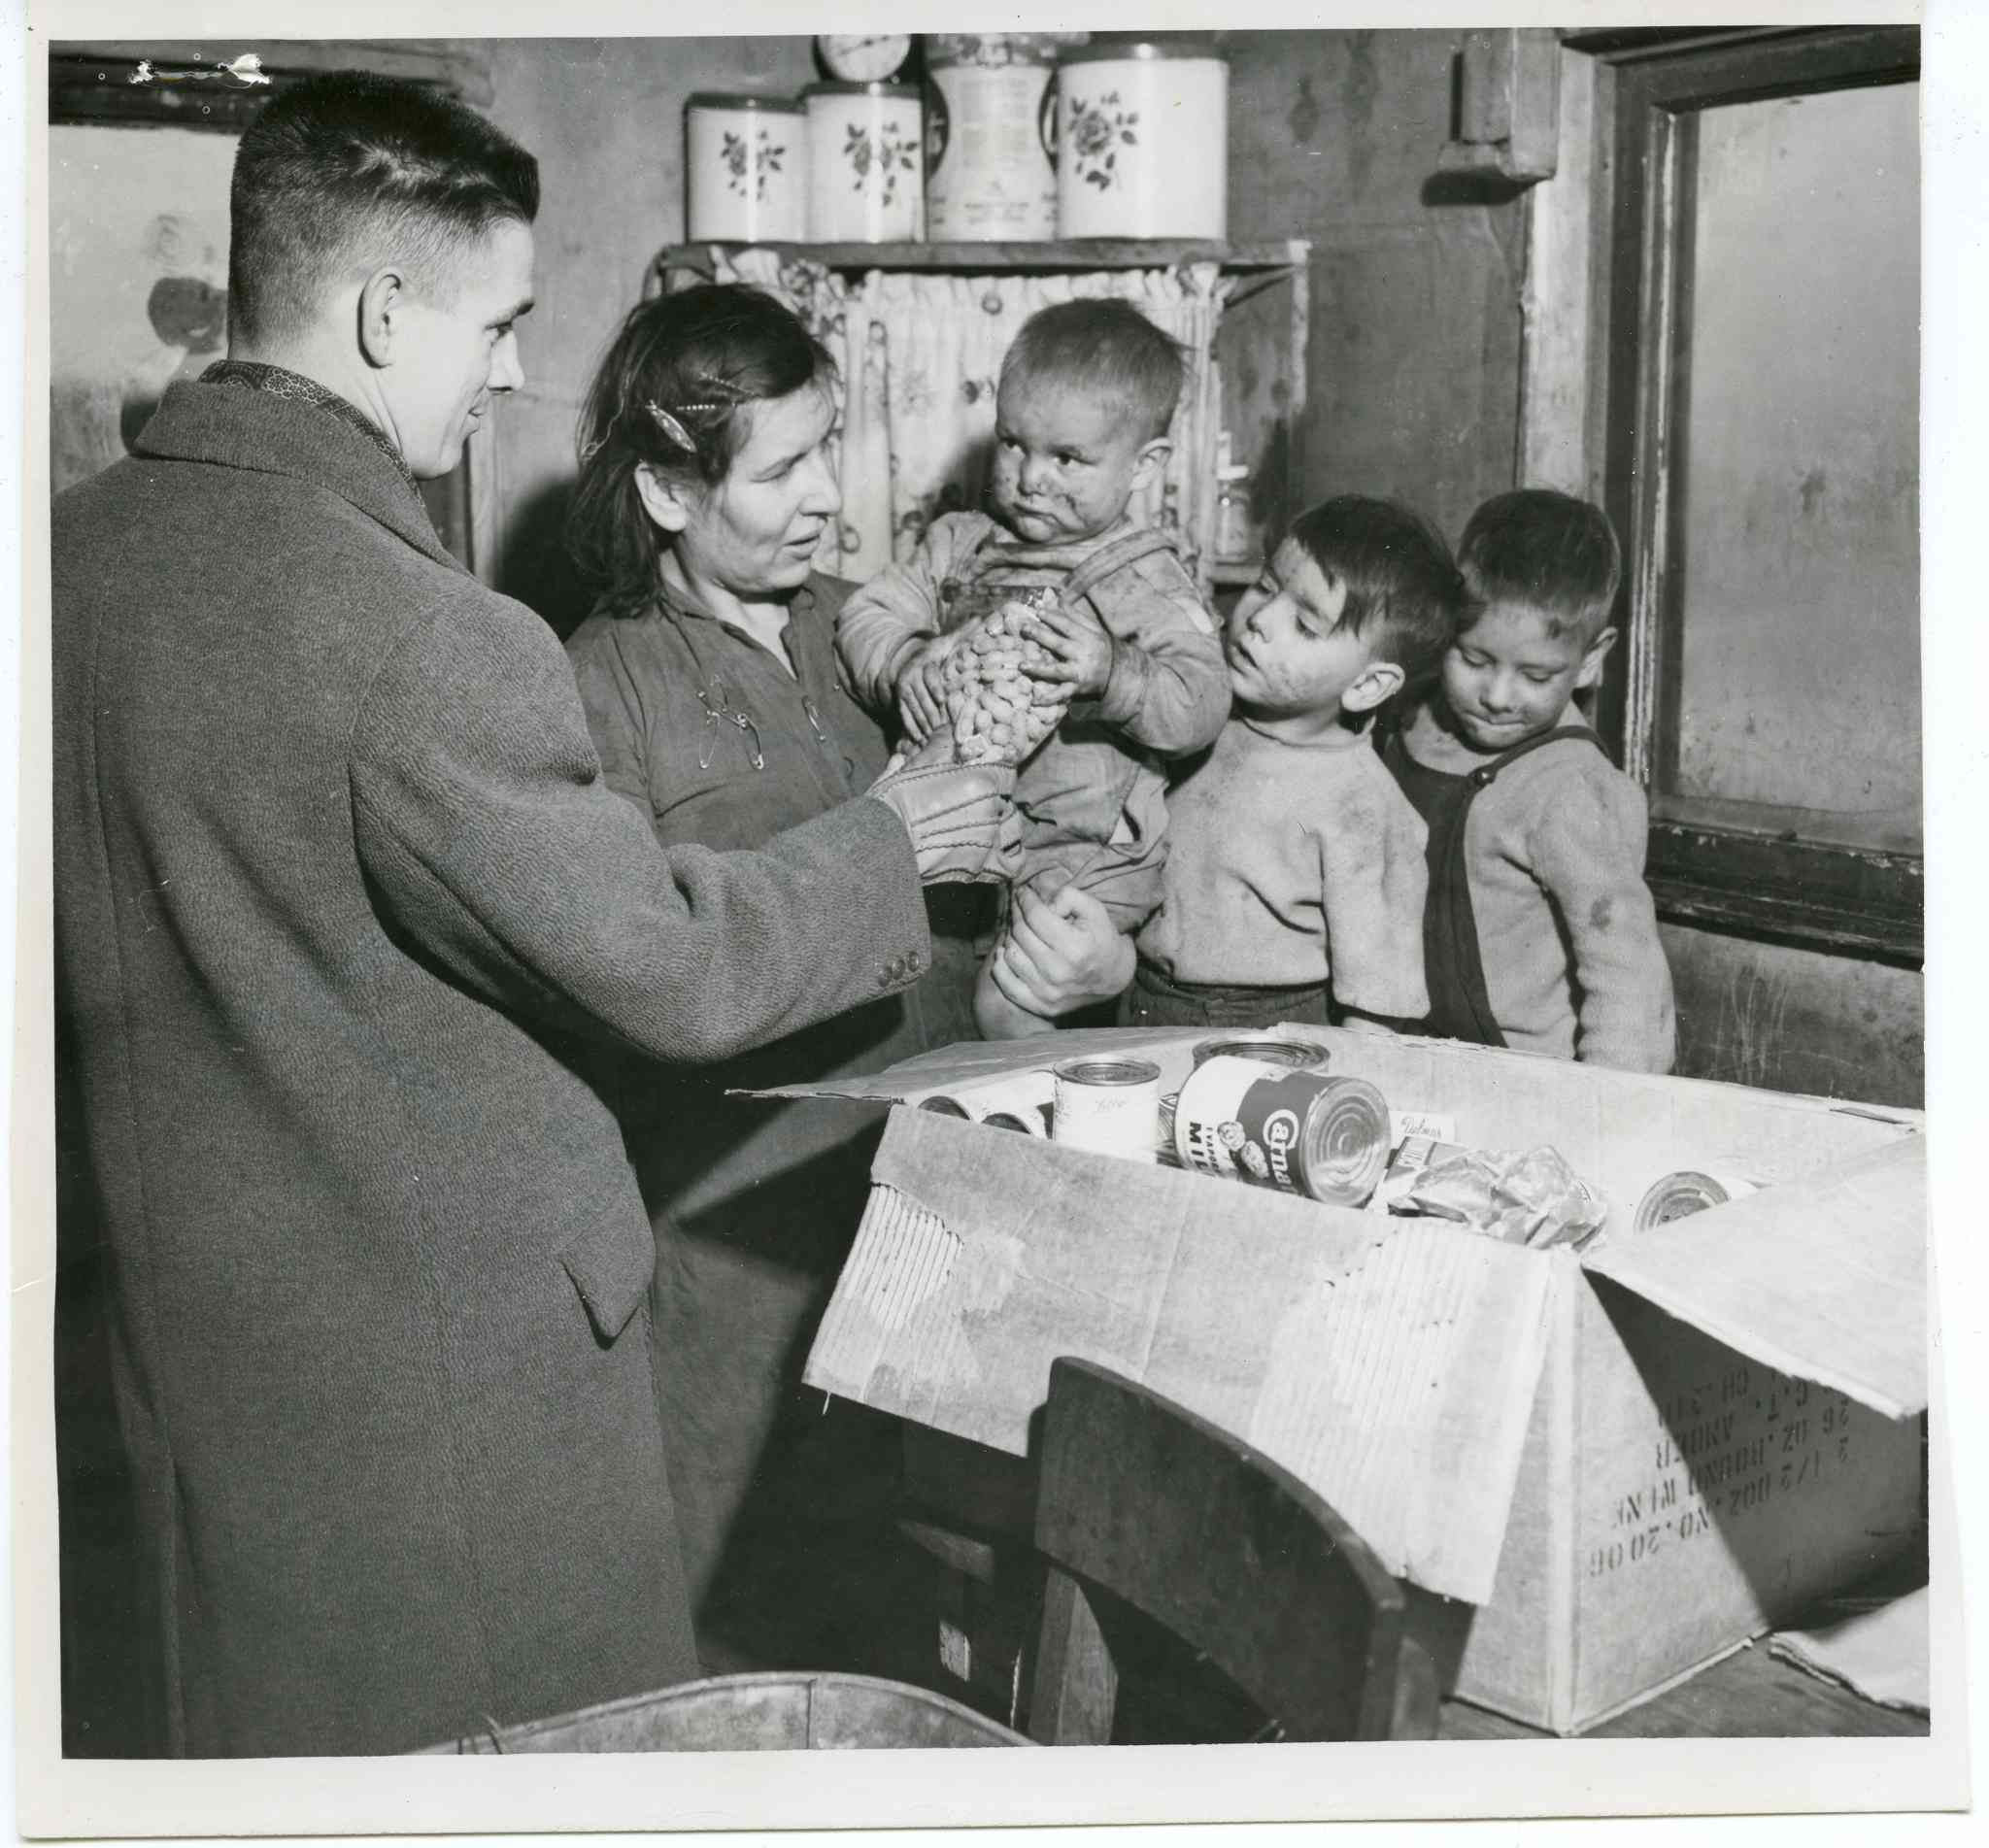 December 24, 1951:  After seeing a Tribune story describing the squalor of the Metis shack settlement in the southwest part of the city, an MTS group used $10 of an office fund to buy groceries for a needy family of the area. Shown presenting the groceries to Mrs. Archie Cardinal and three of her eight children is Joe Peters, head of the plants records department.